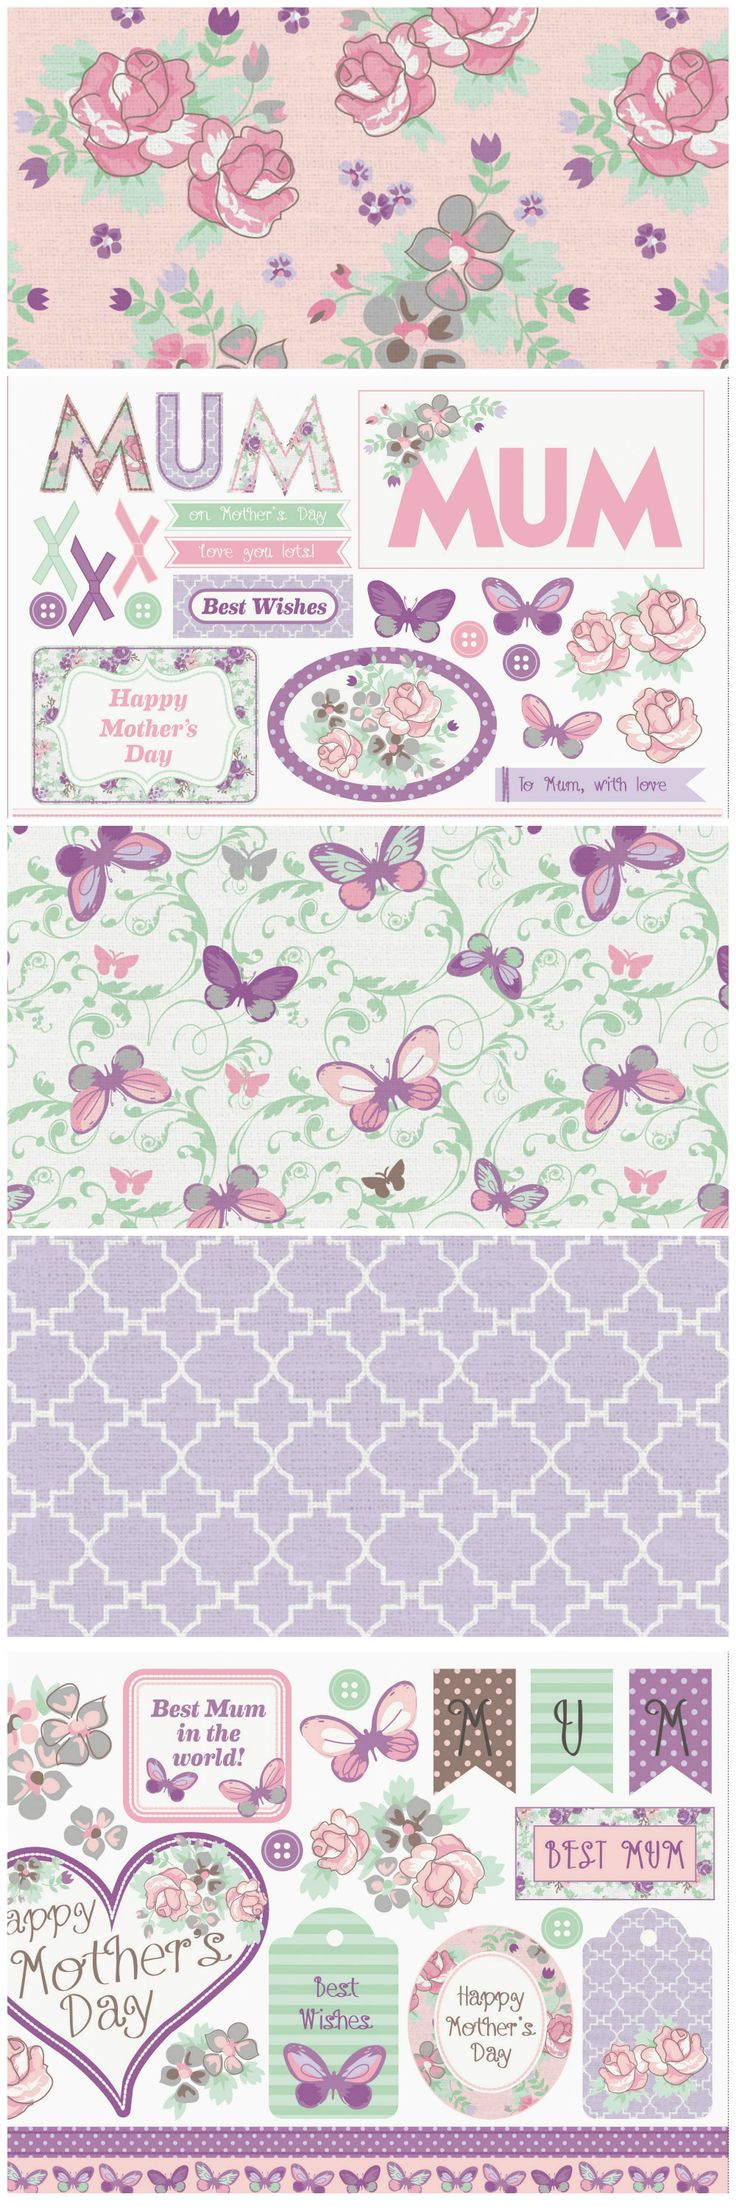 download these gorgeous free printable mothers day papers from the papercraft inspirations magazine website